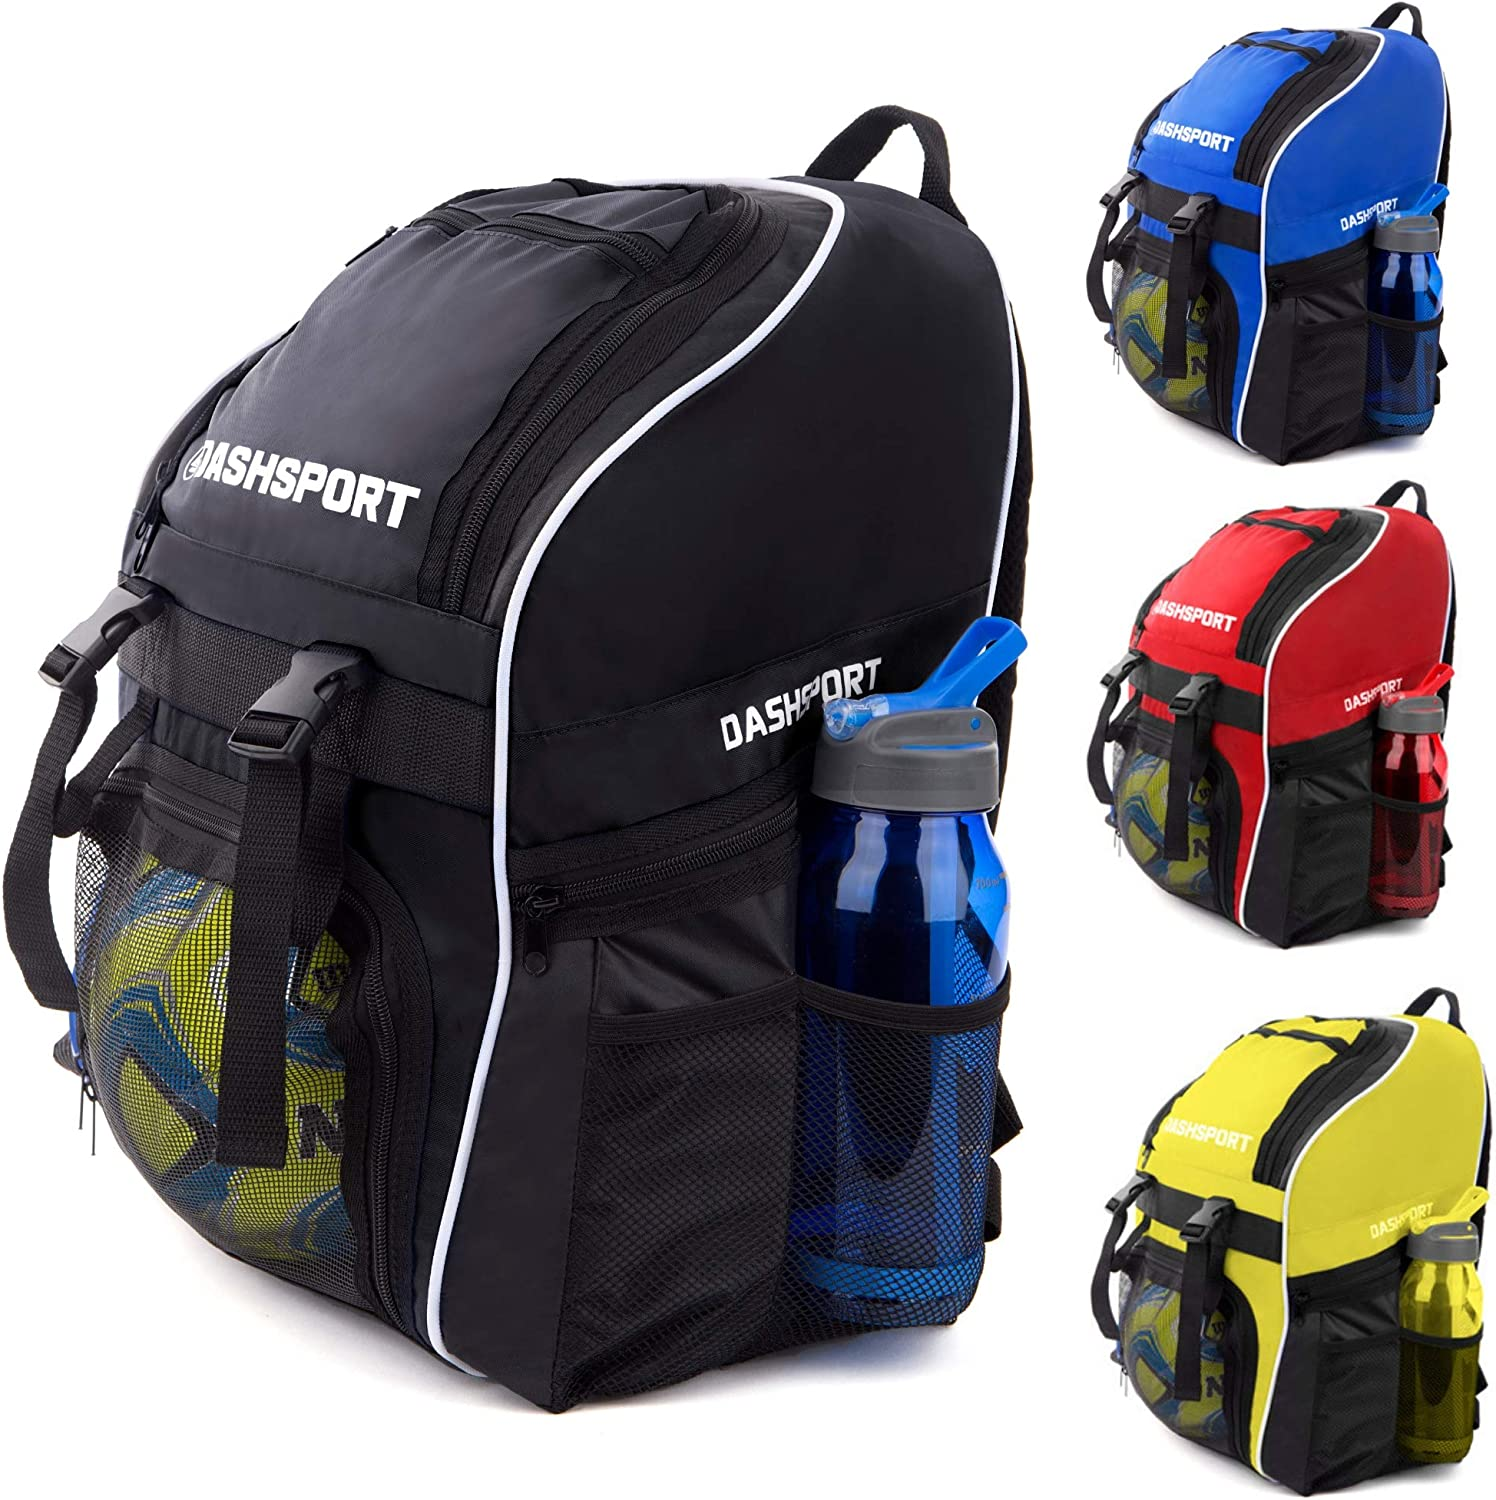 Soccer Cheap sale Backpack - Basketball Youth Max 67% OFF Kids Up 6 and Ages